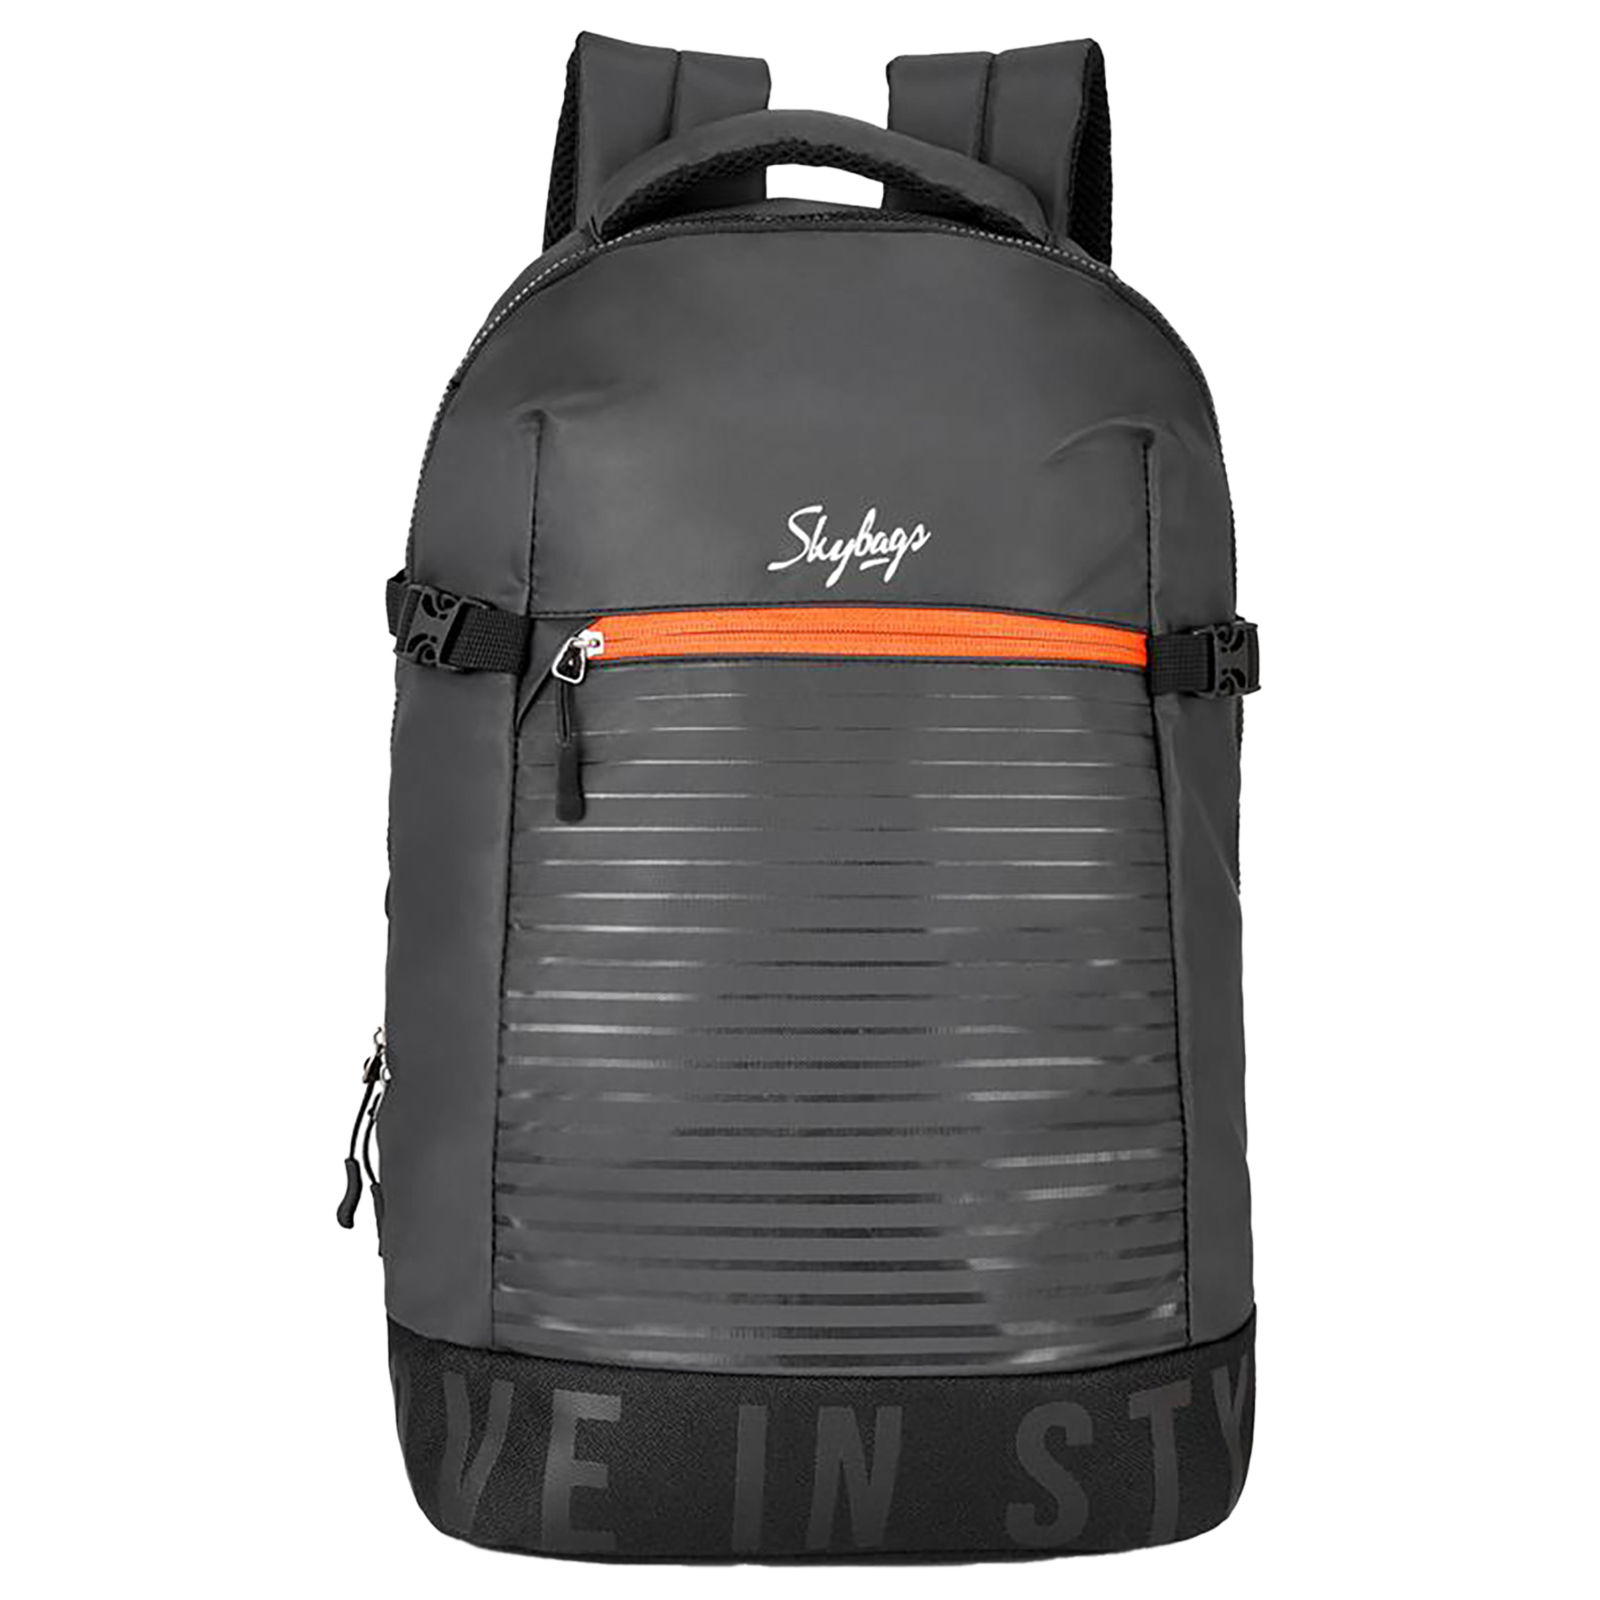 Sky Bags Boho 01 23 Litres Thermoplastic Elastomers Backpack (Rain Cover, BPBOH1RBLK, Black)_1